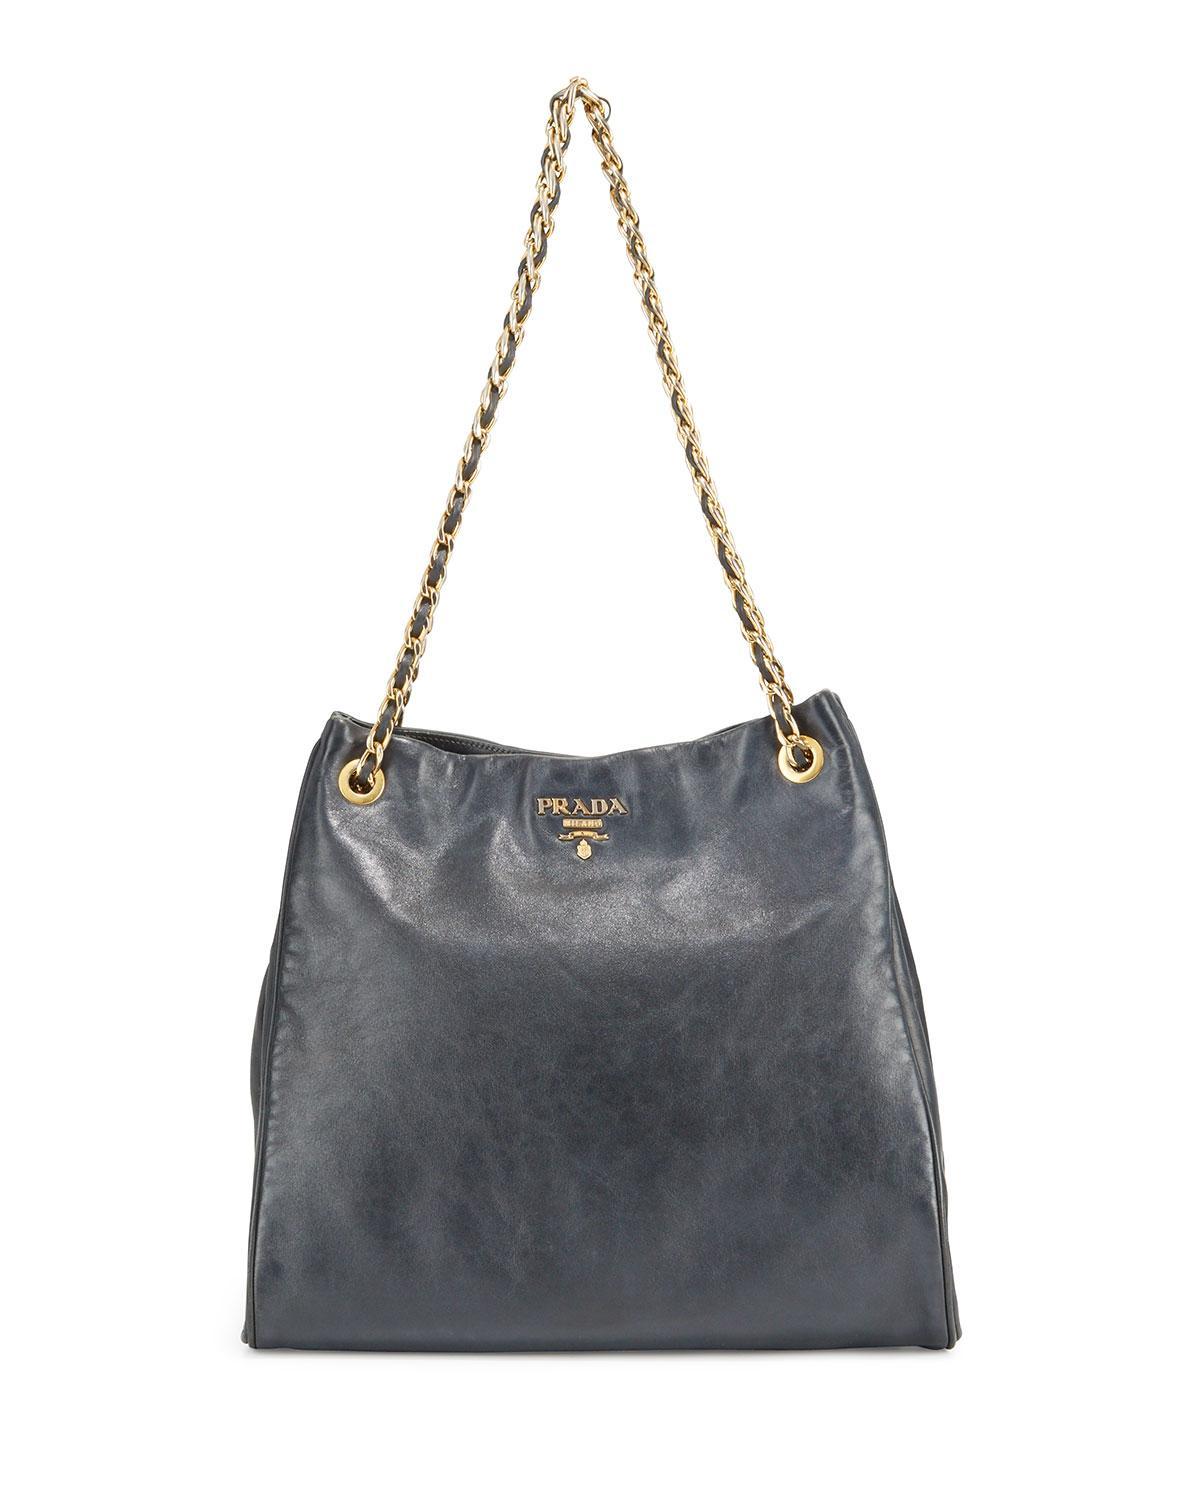 6b70a1e29f6 Women's Black Preowned Braided Leather And Chain Tote Bag